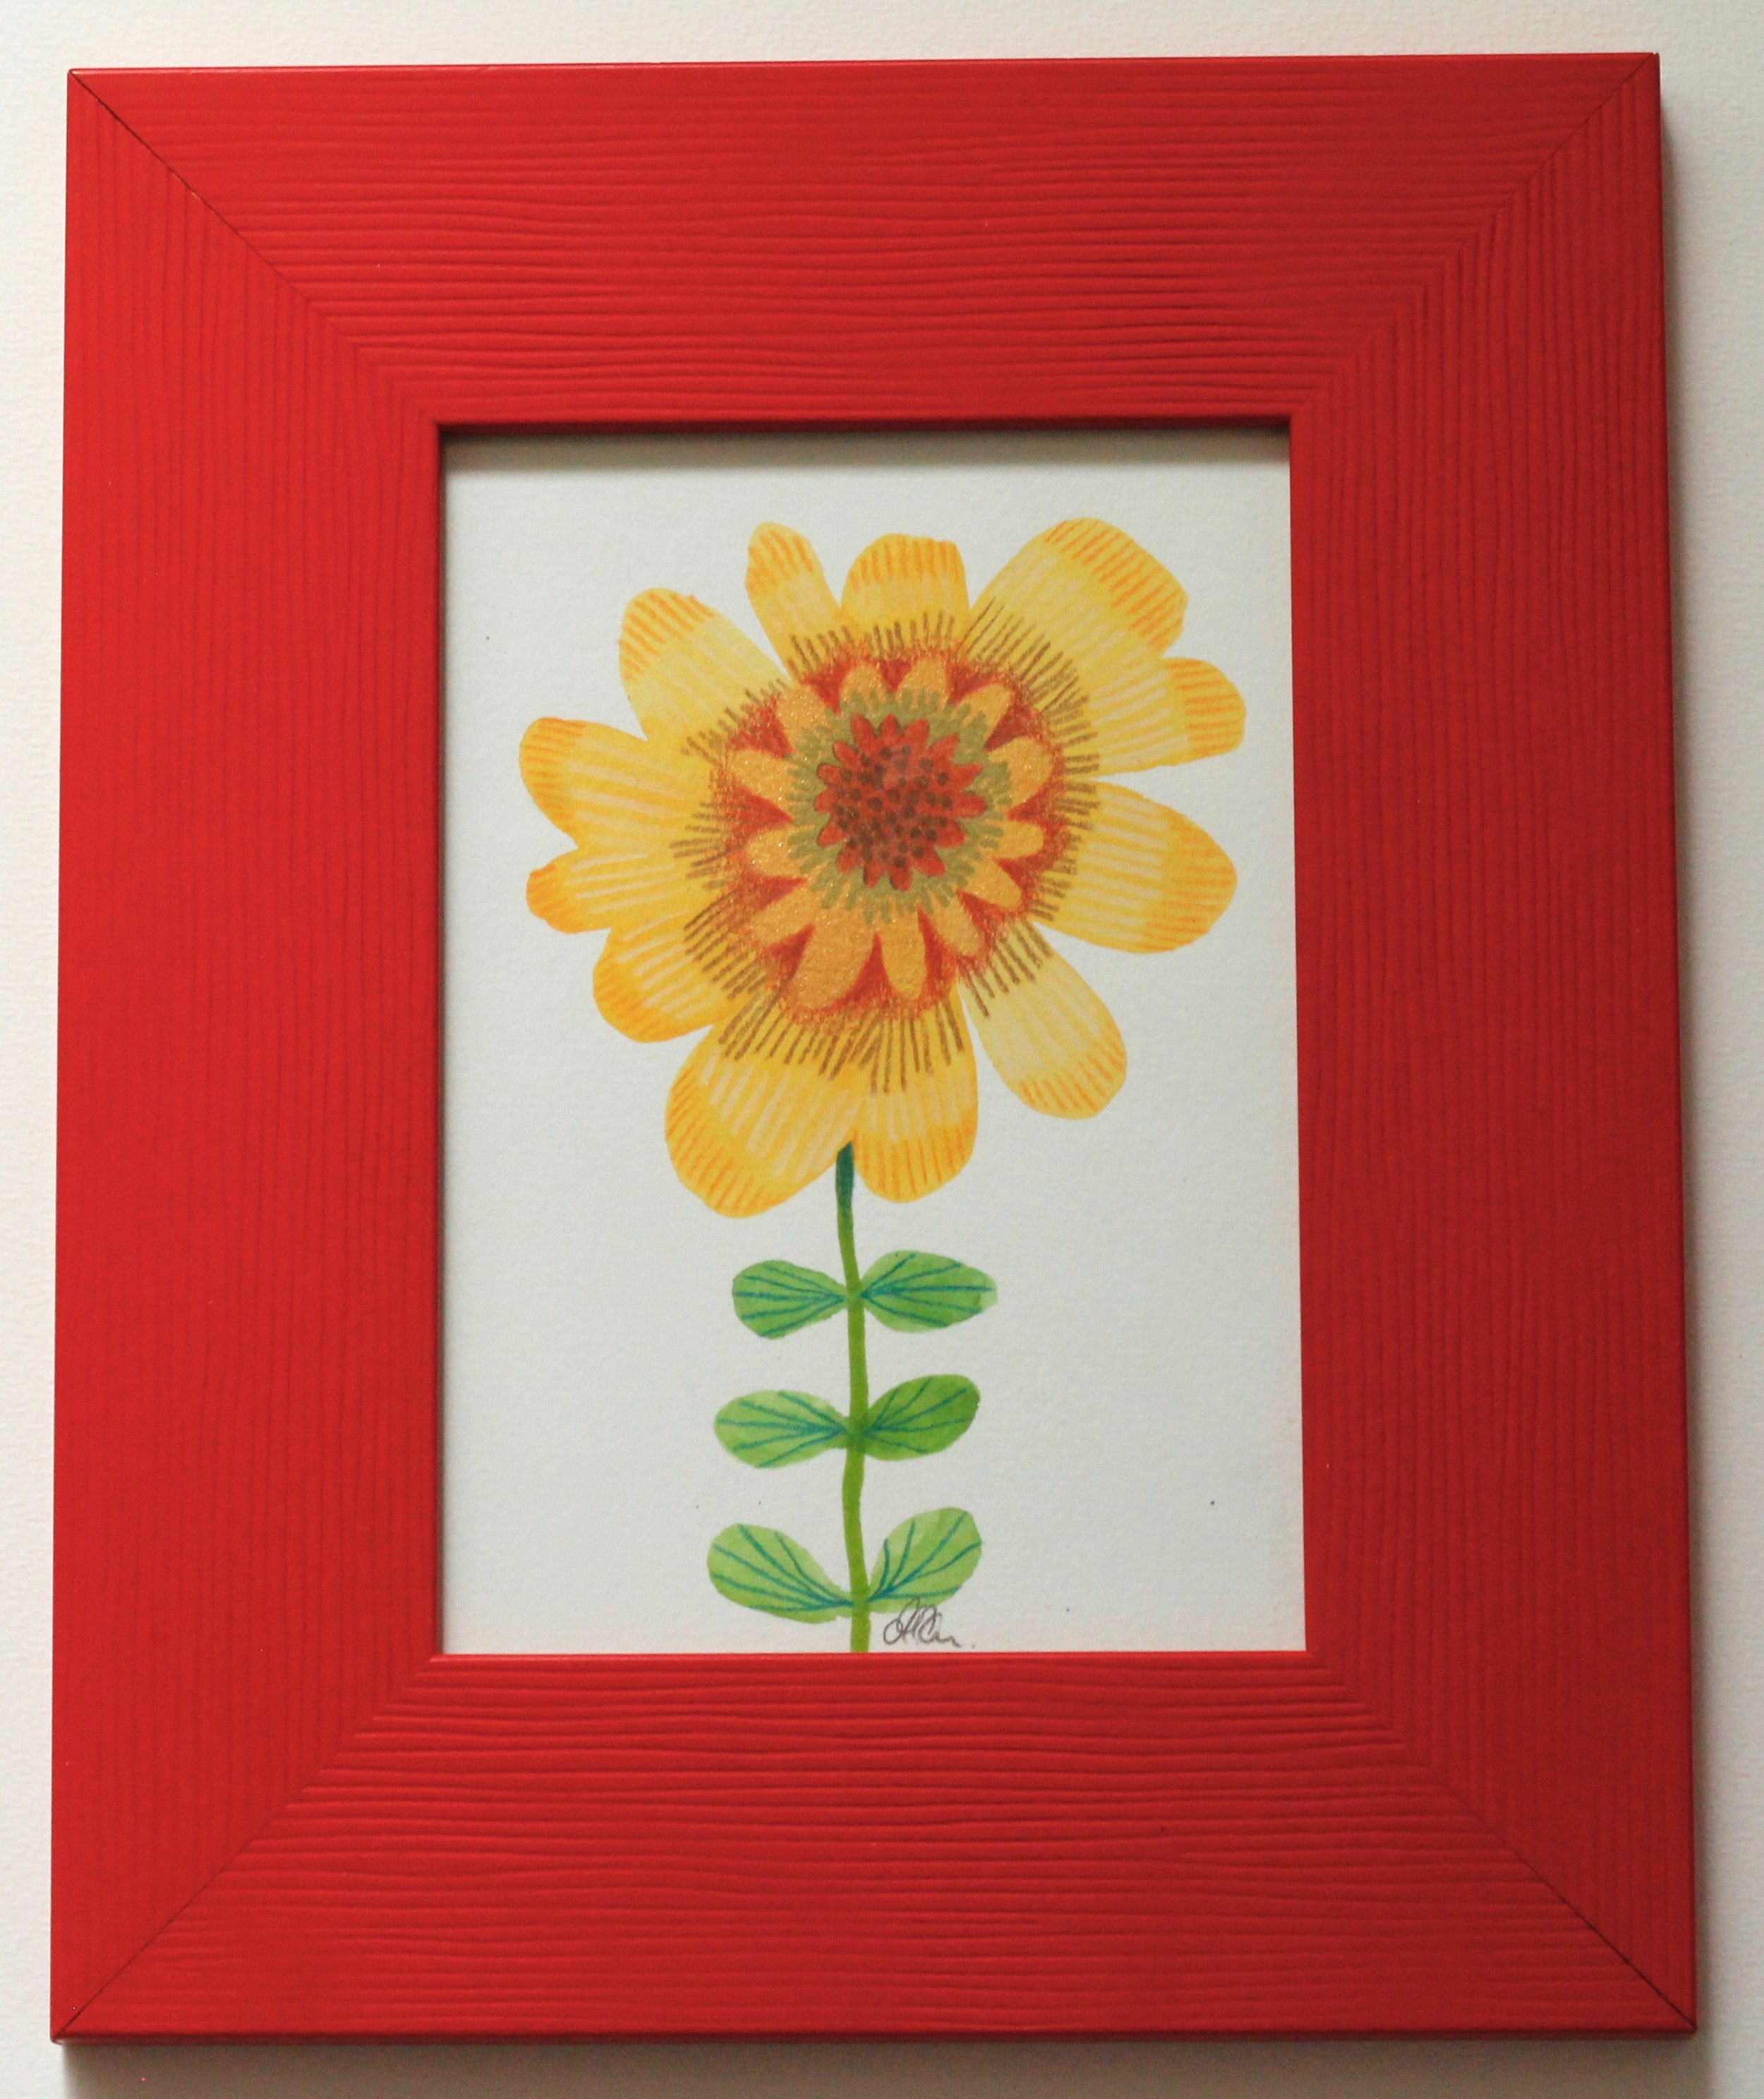 Flower Red Frame - 9x14cm gouache and pencil on paper €35